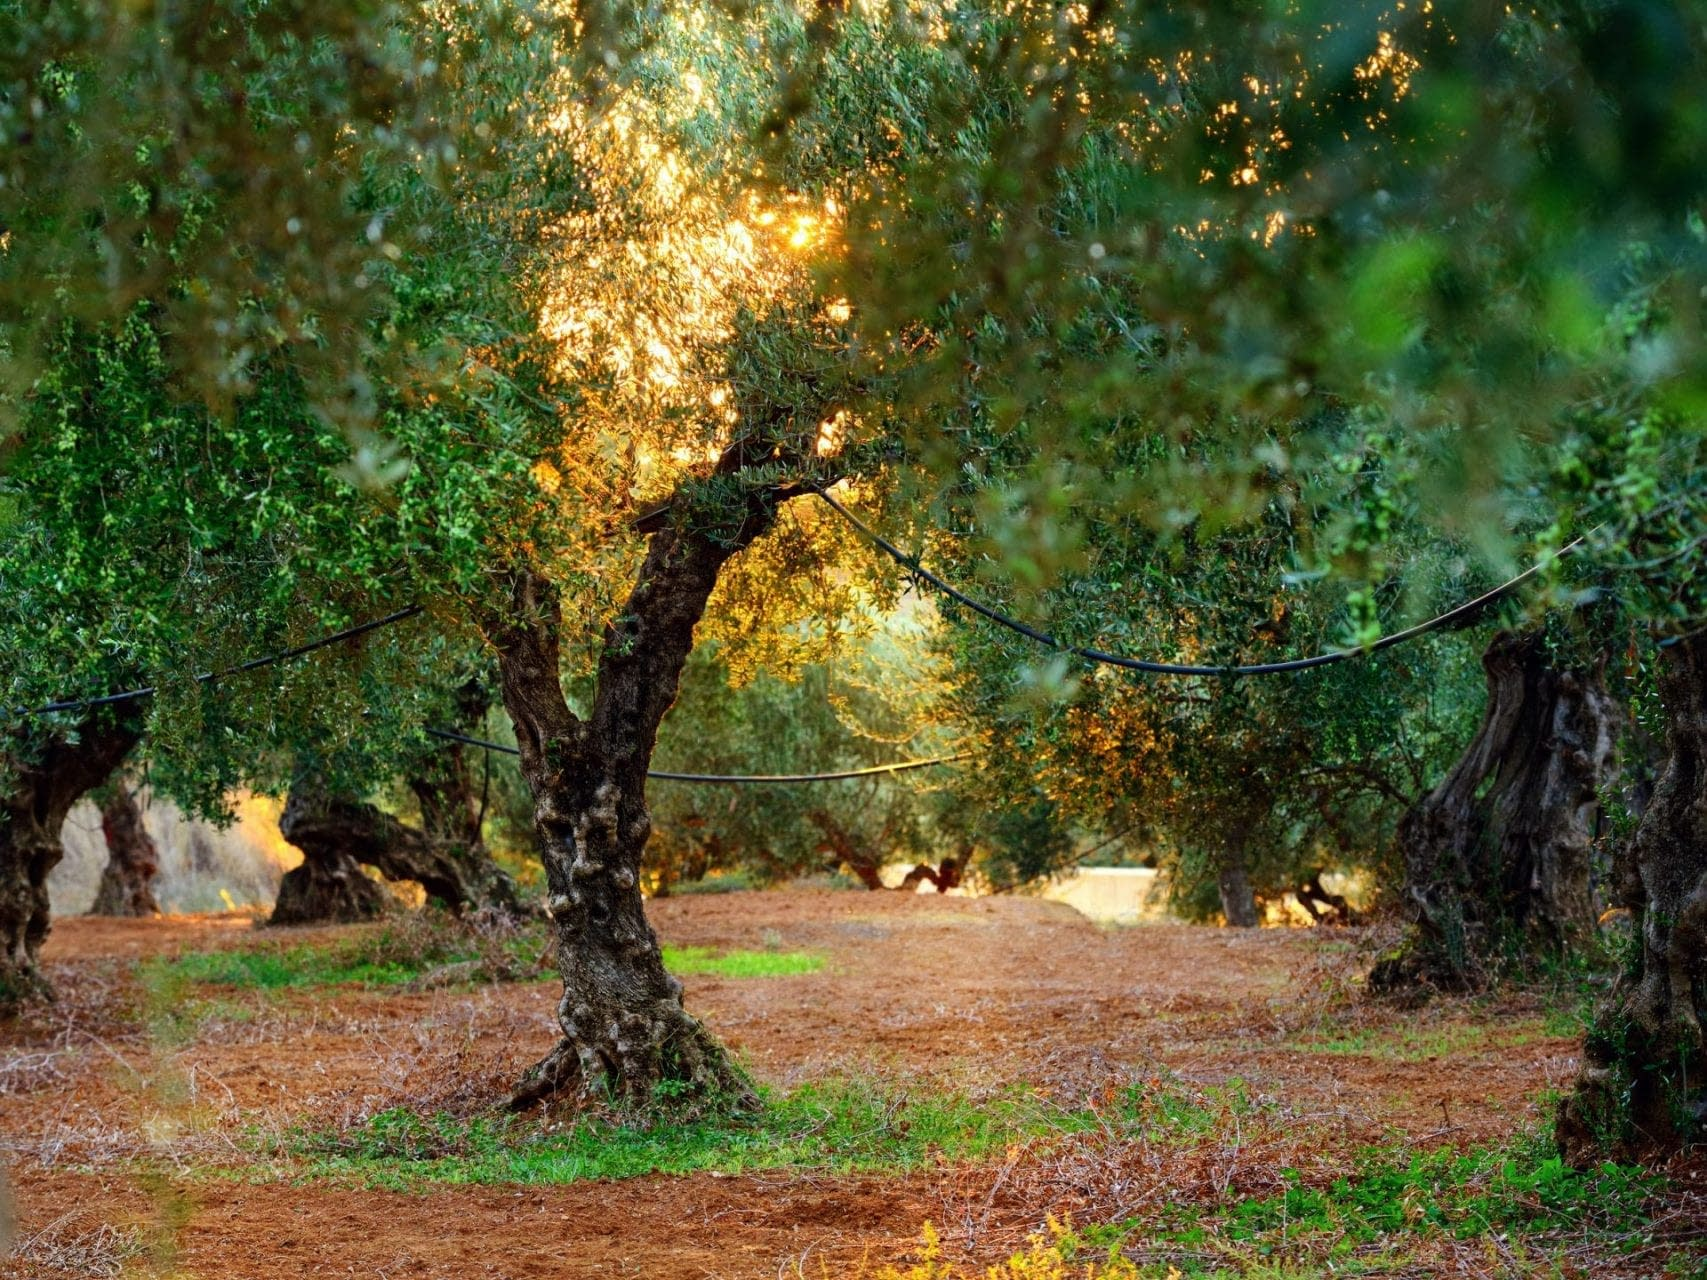 opinion-production-seeing-the-olive-tree-as-a-living-being-olive-oil-times